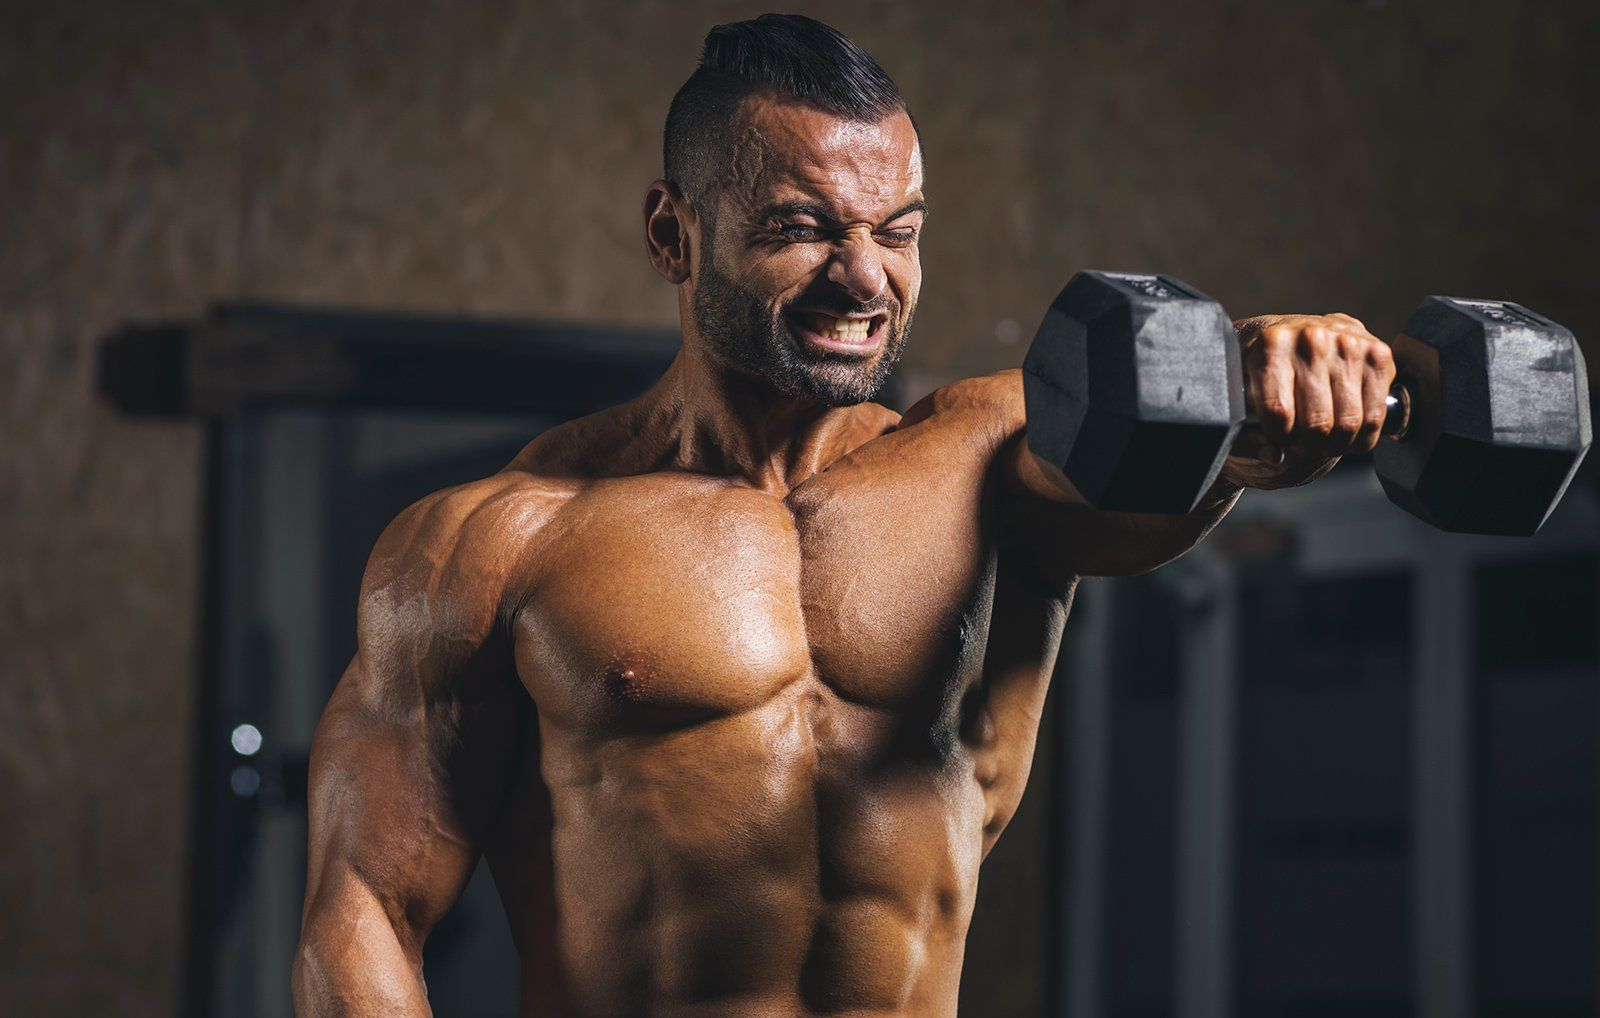 Shoulder Pain When Lifting: Rotator Cuff Injury Symptoms | Men's Health